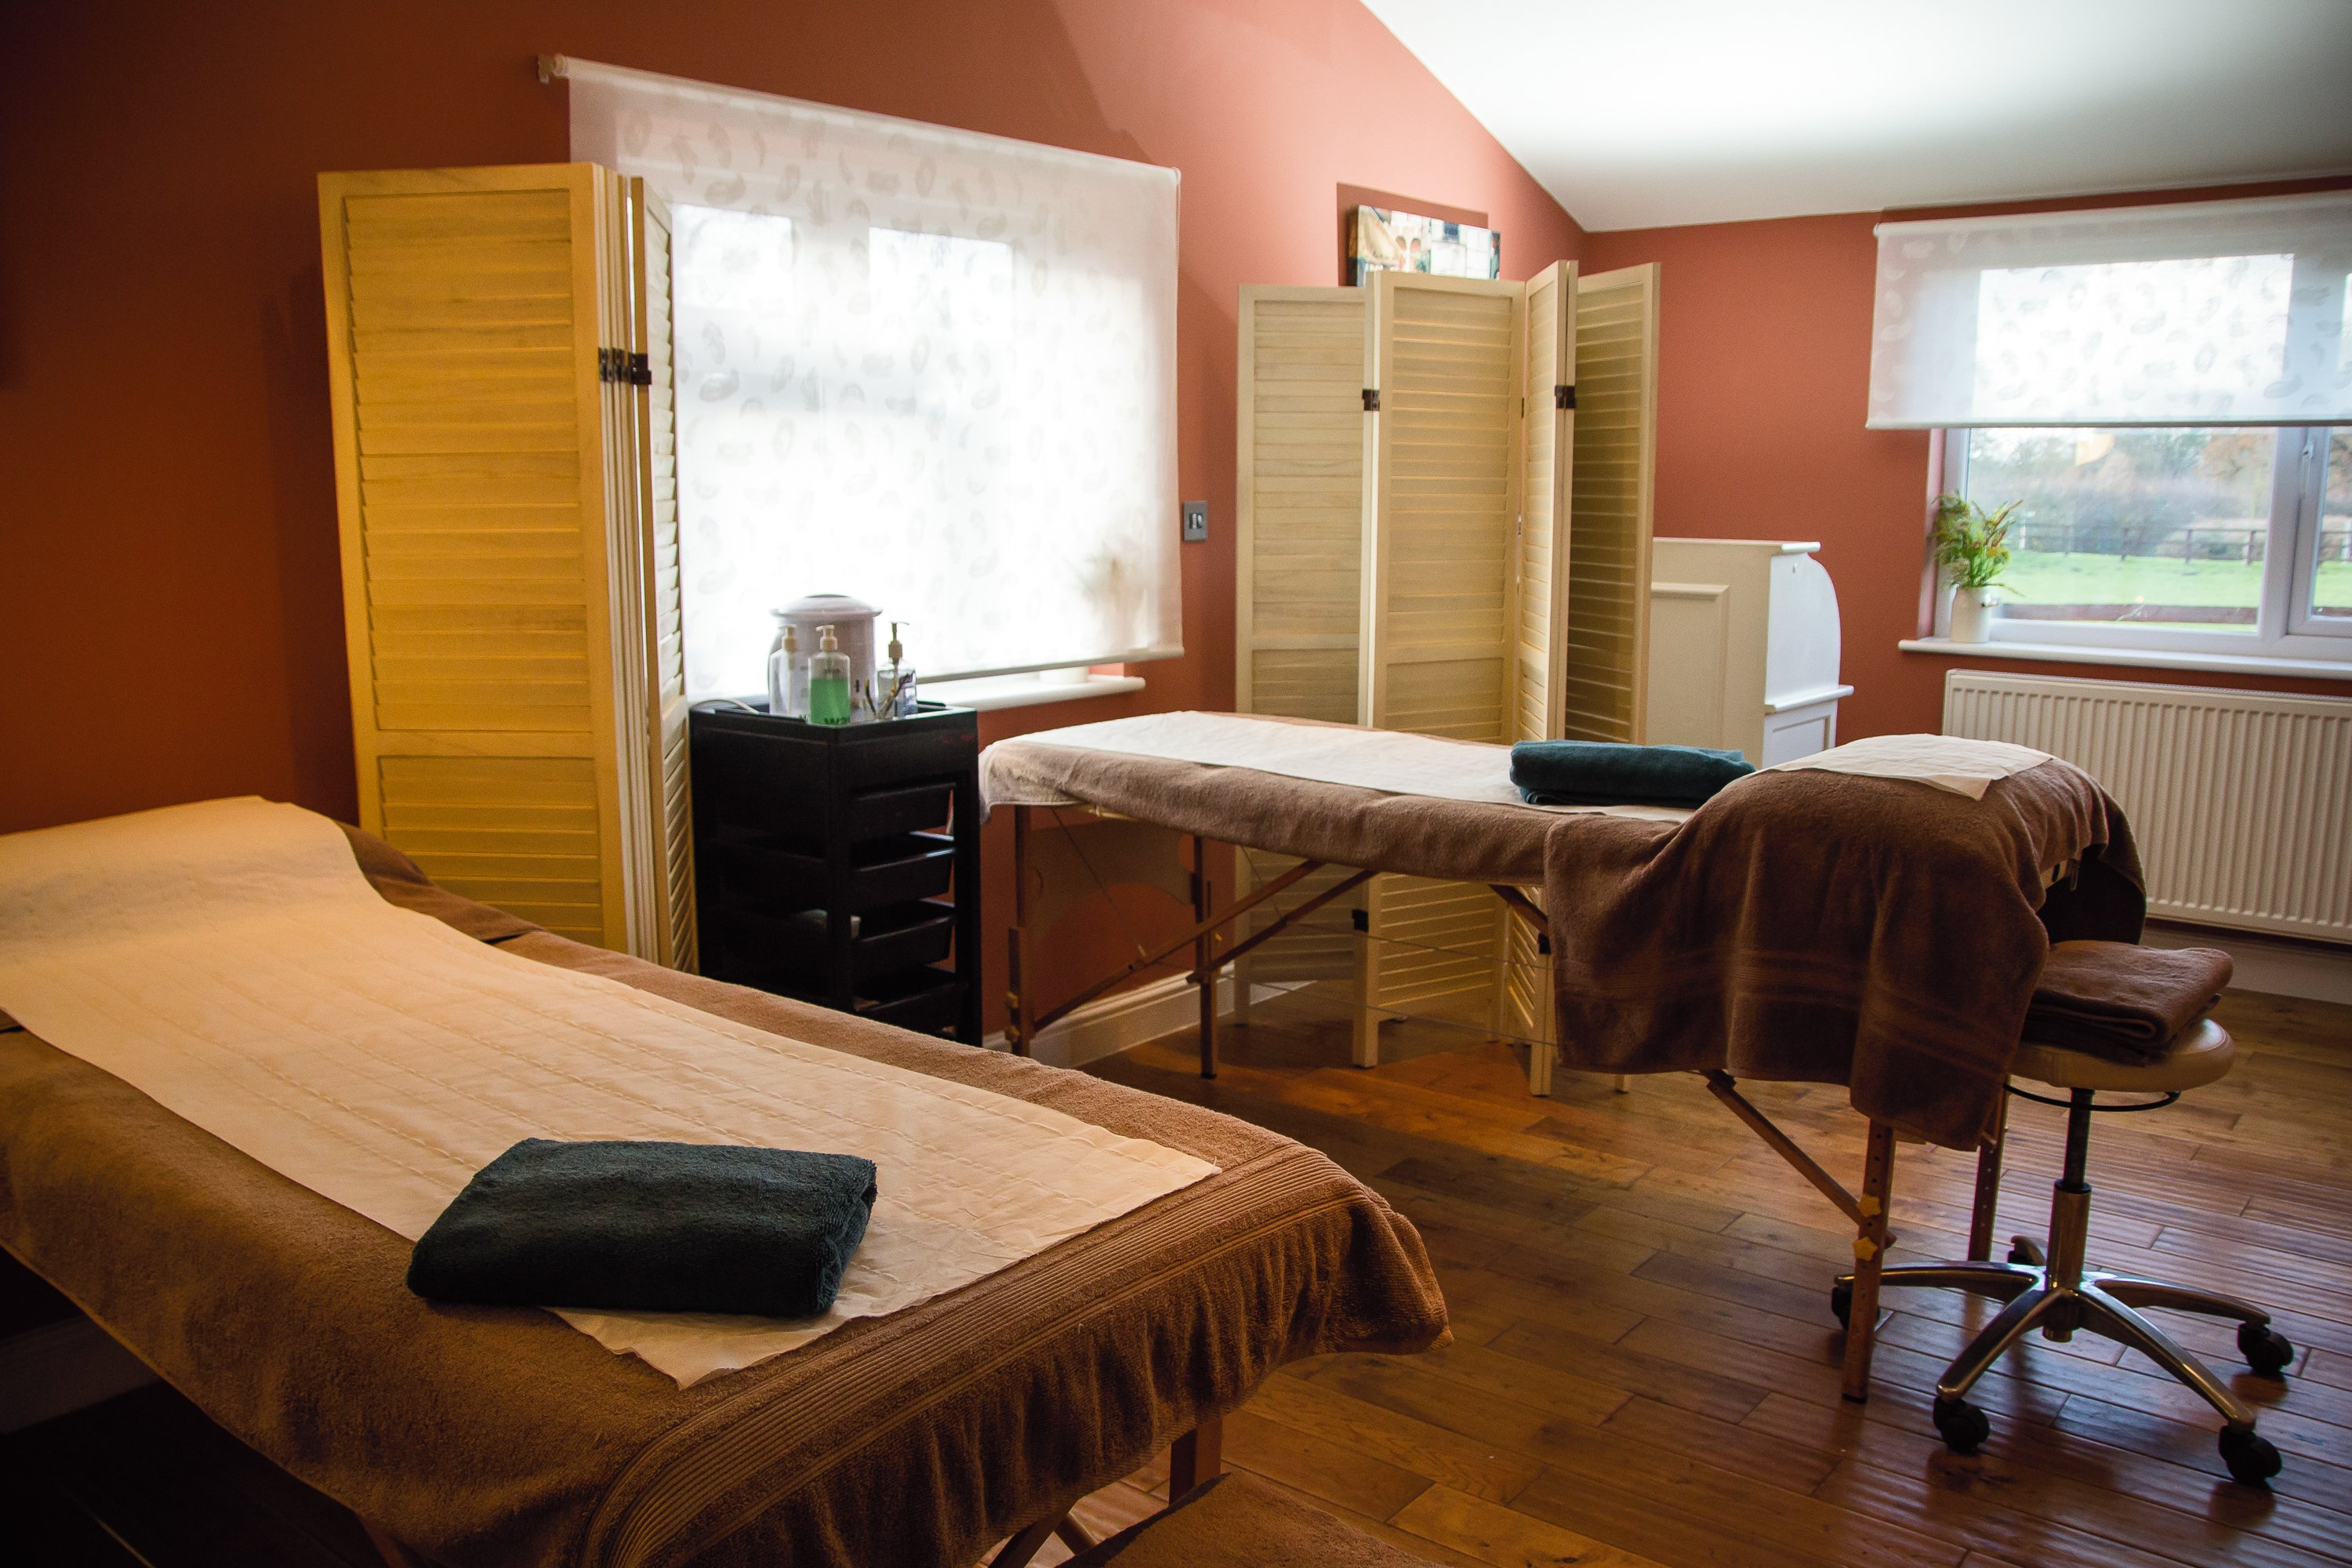 Photograph Of A Room Containing Two Massage Beds